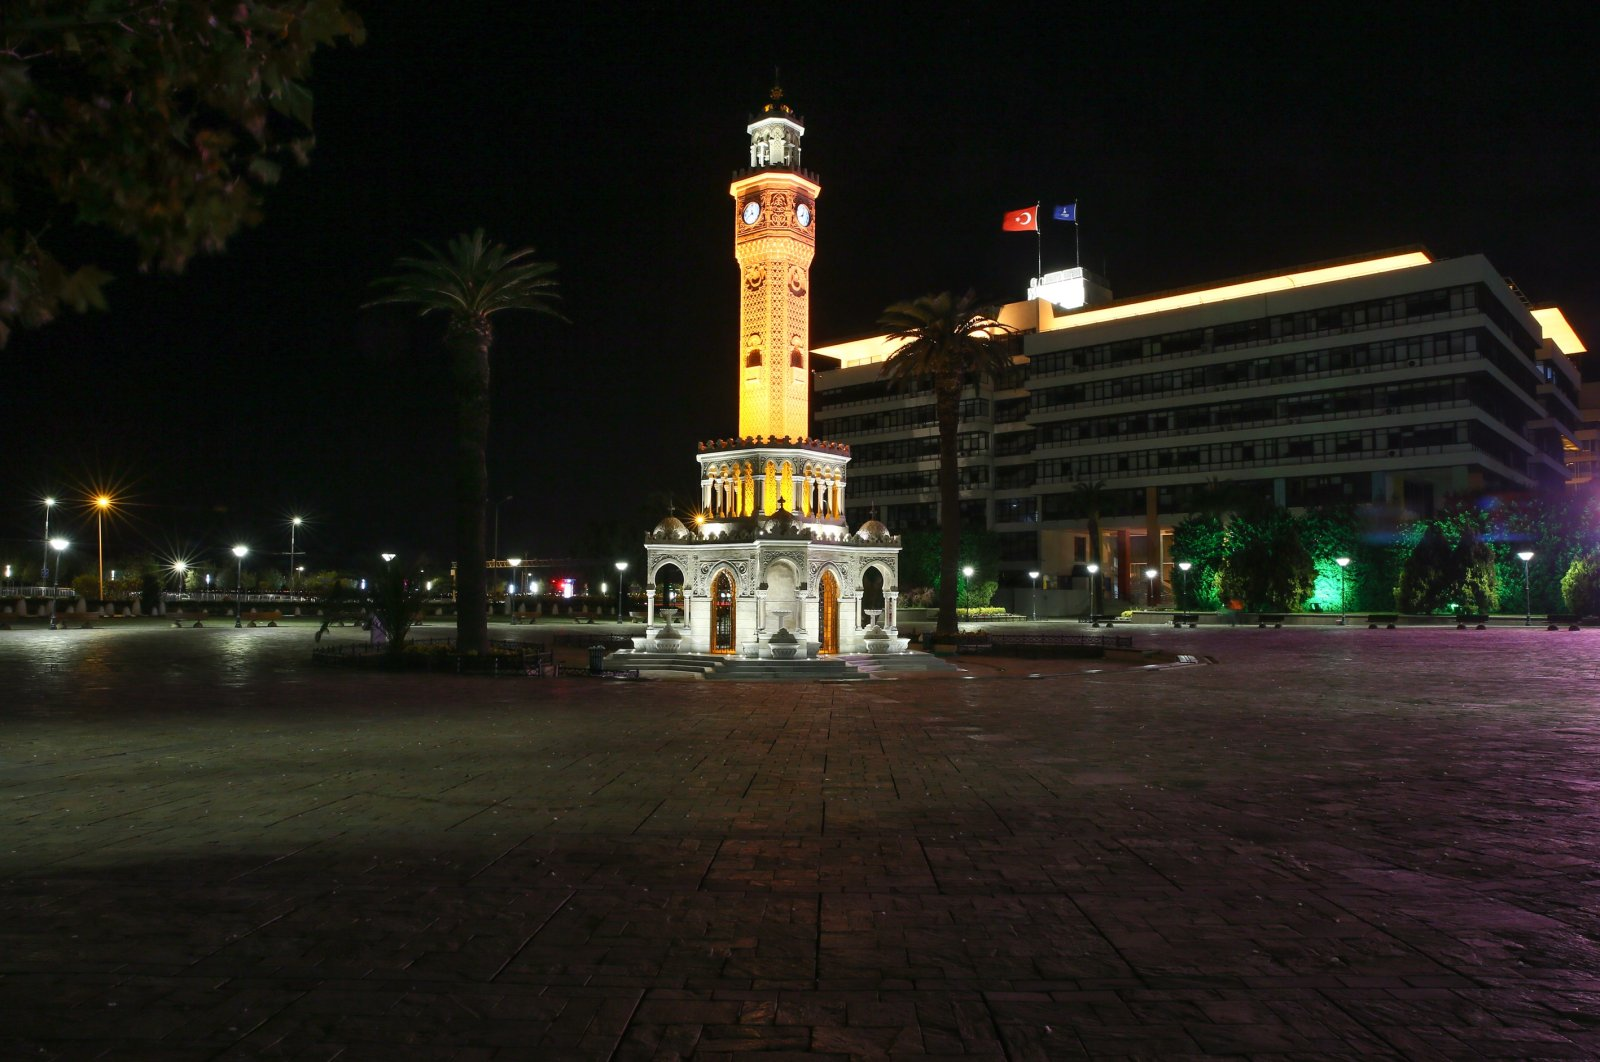 The historic clock tower at the Konak Square in the western city of Izmir is seen deserted during a nighttime curfew, on Nov. 21, 2020. (AA Photo)